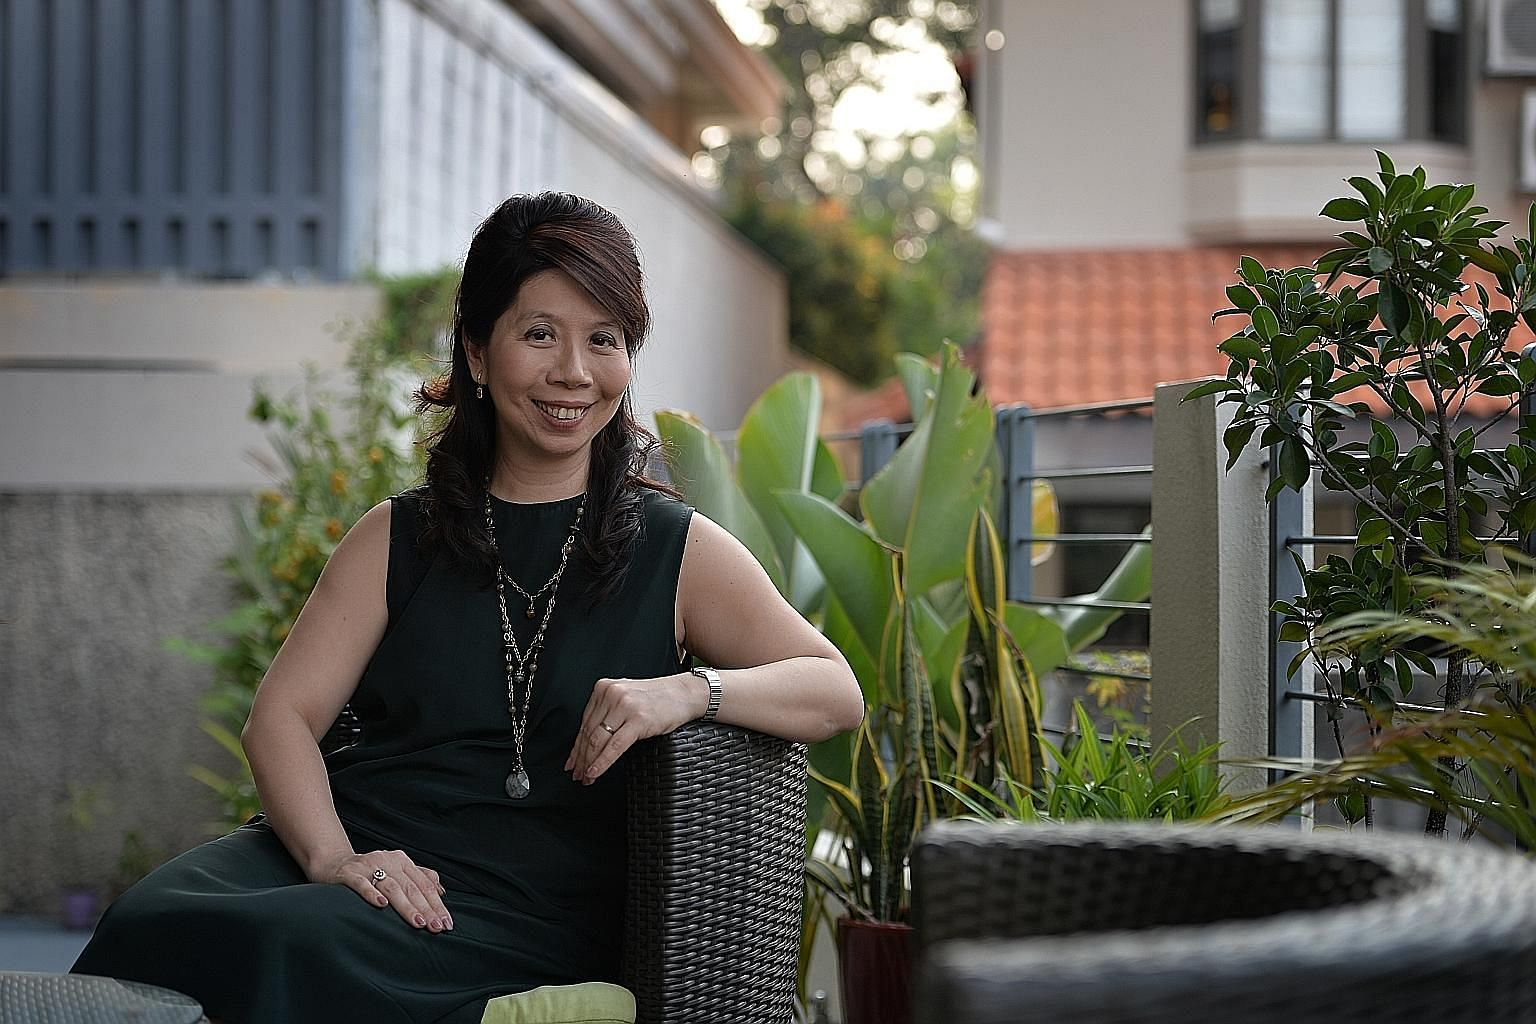 Ms Madeline Ho learnt a lot from the life experiences of her great grandmother, like being frugal. She believes her business has a social purpose.